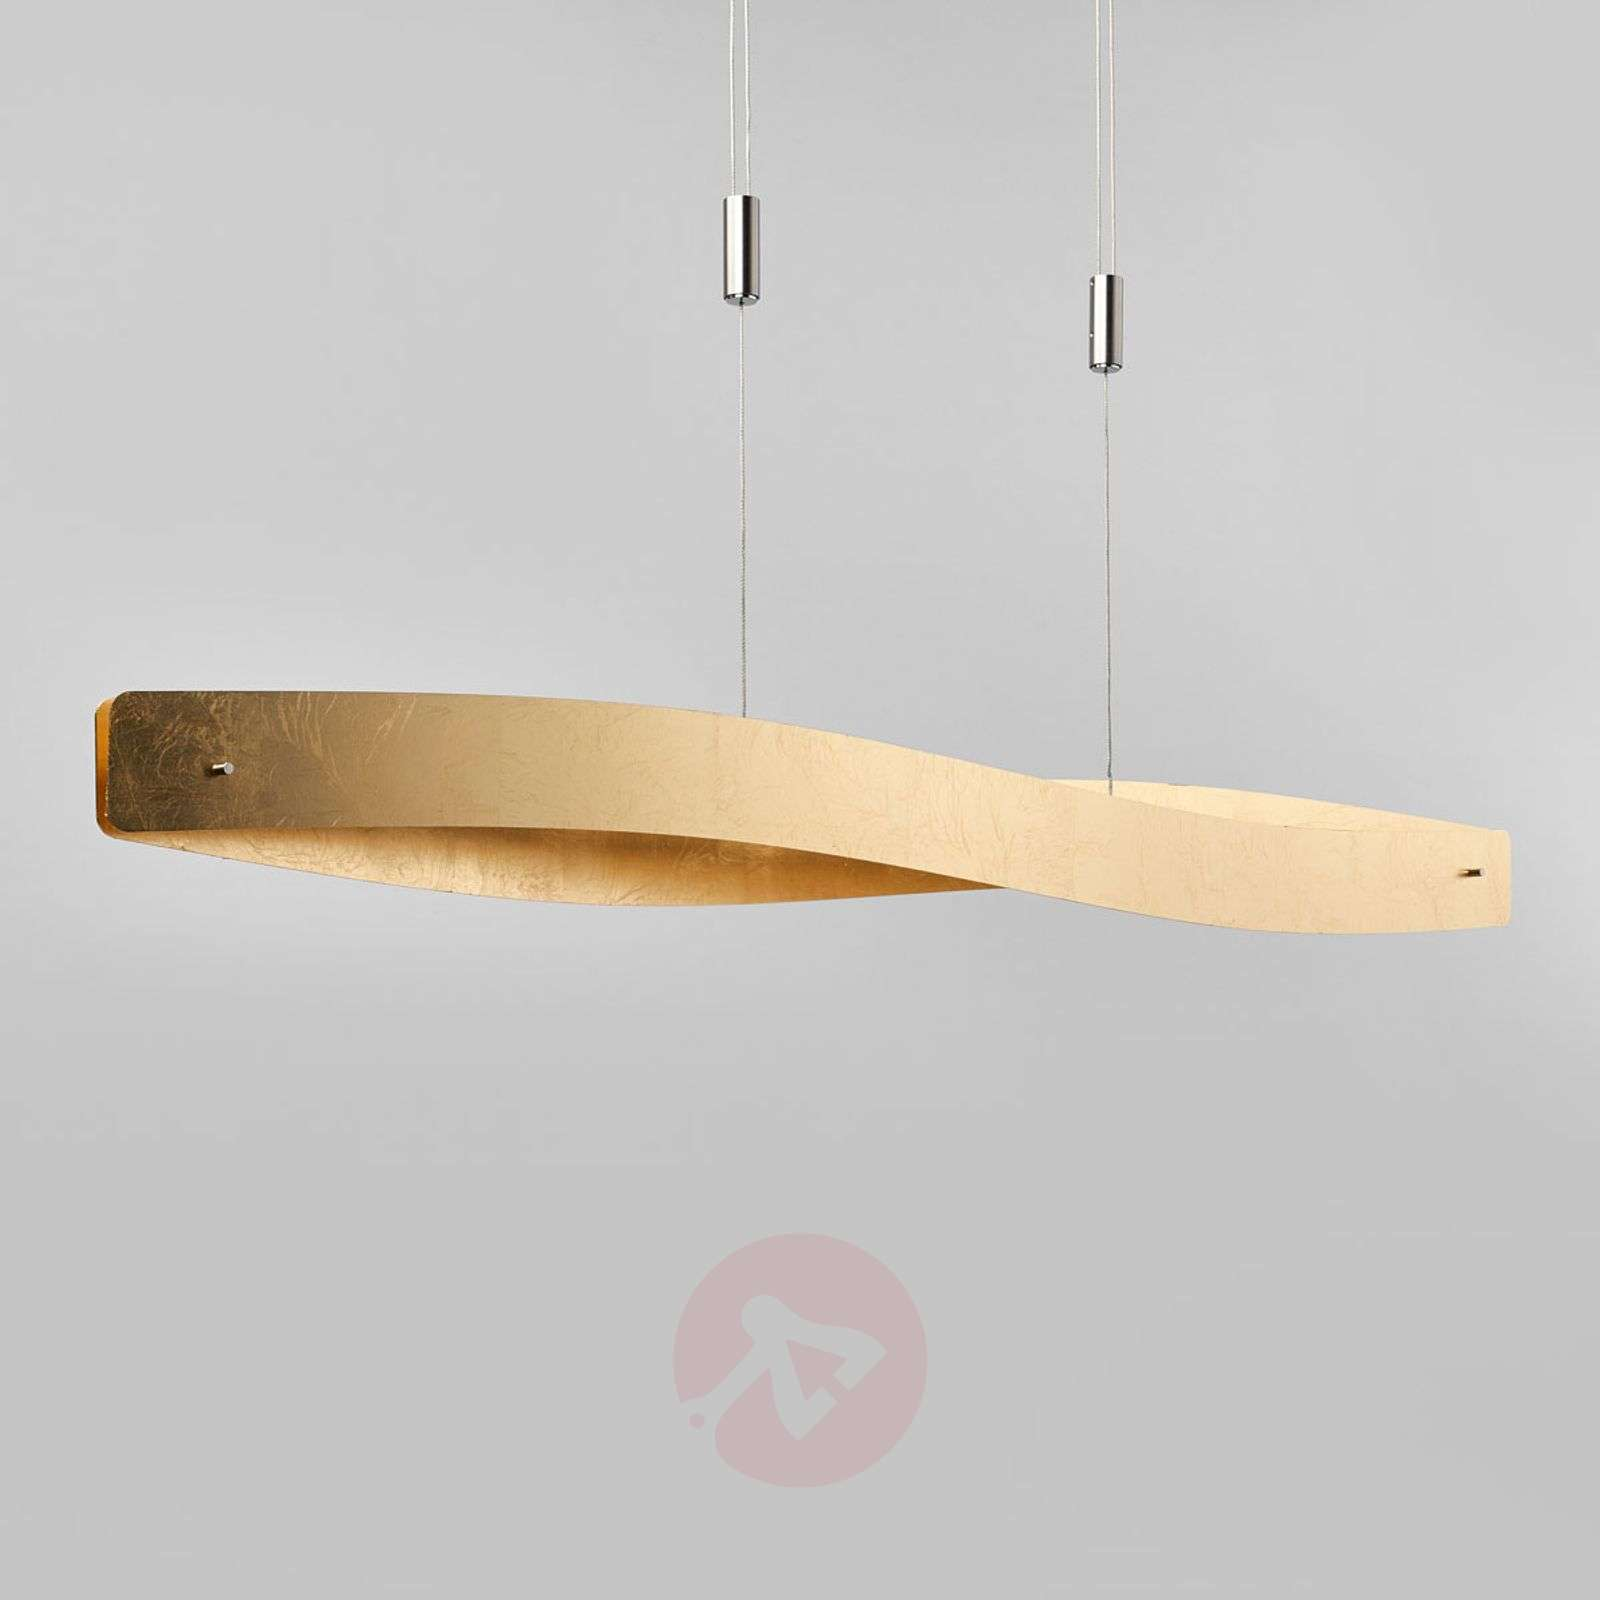 Curved LED hanging light Lian with a golden look-6722408-01